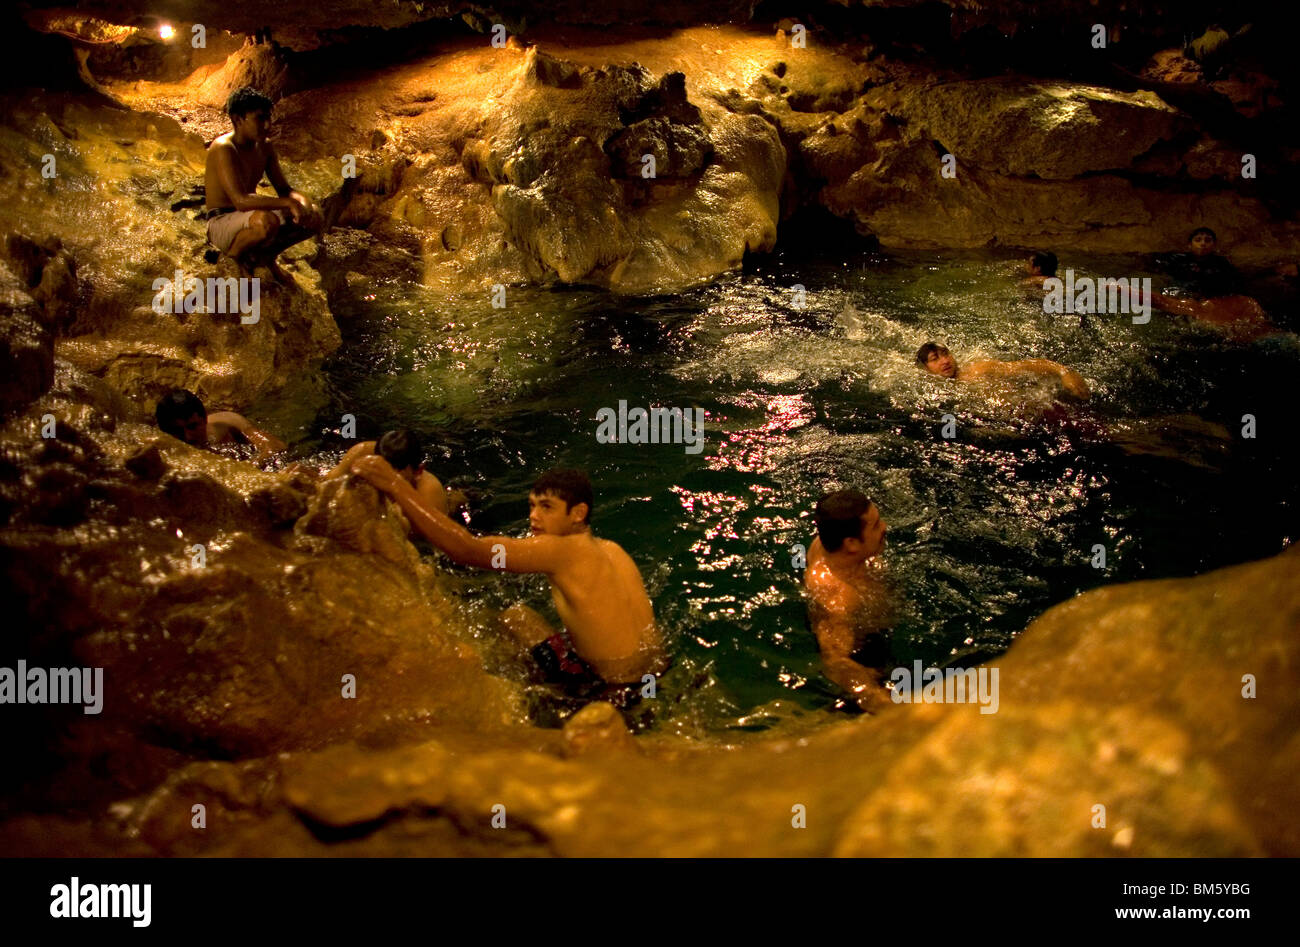 People Bathe In San Ignacio Cenote A Natural Underground Pool Yucatan State On Mexicos Peninsula June 14 2009